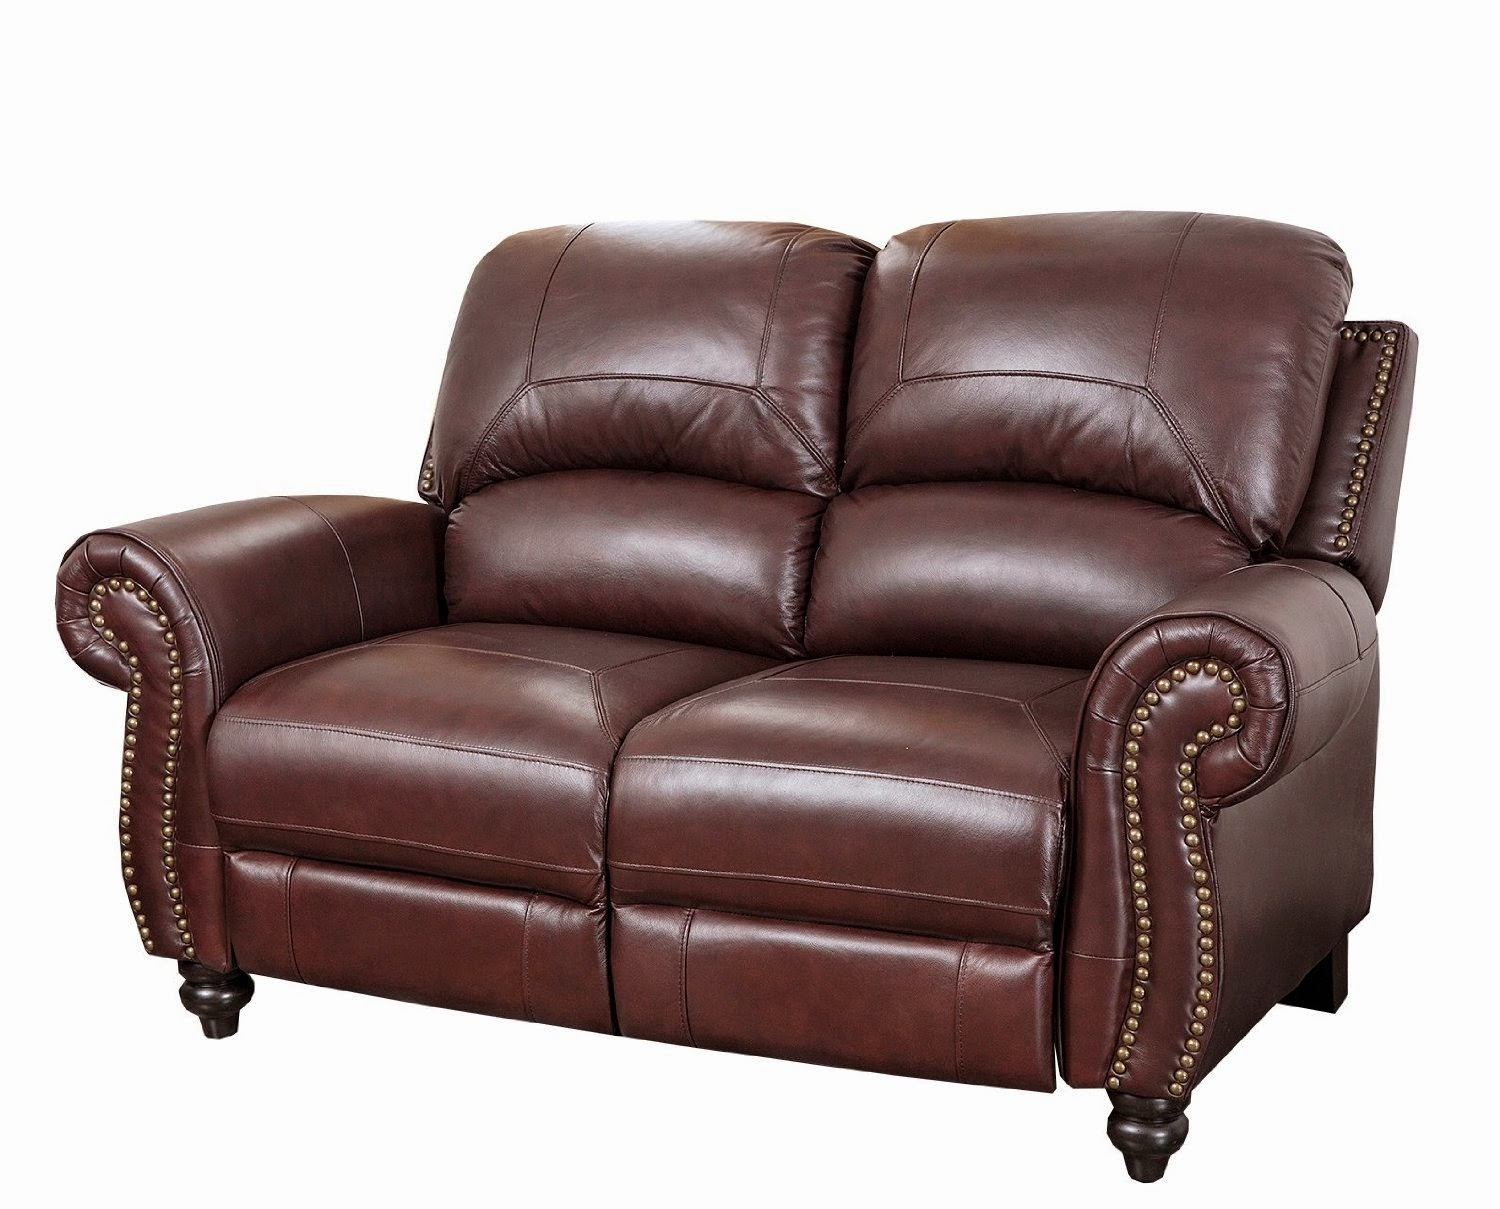 Best reclining sofa for the money vivaldi 2 seater reclining leather sofa Leather reclining sofa loveseat